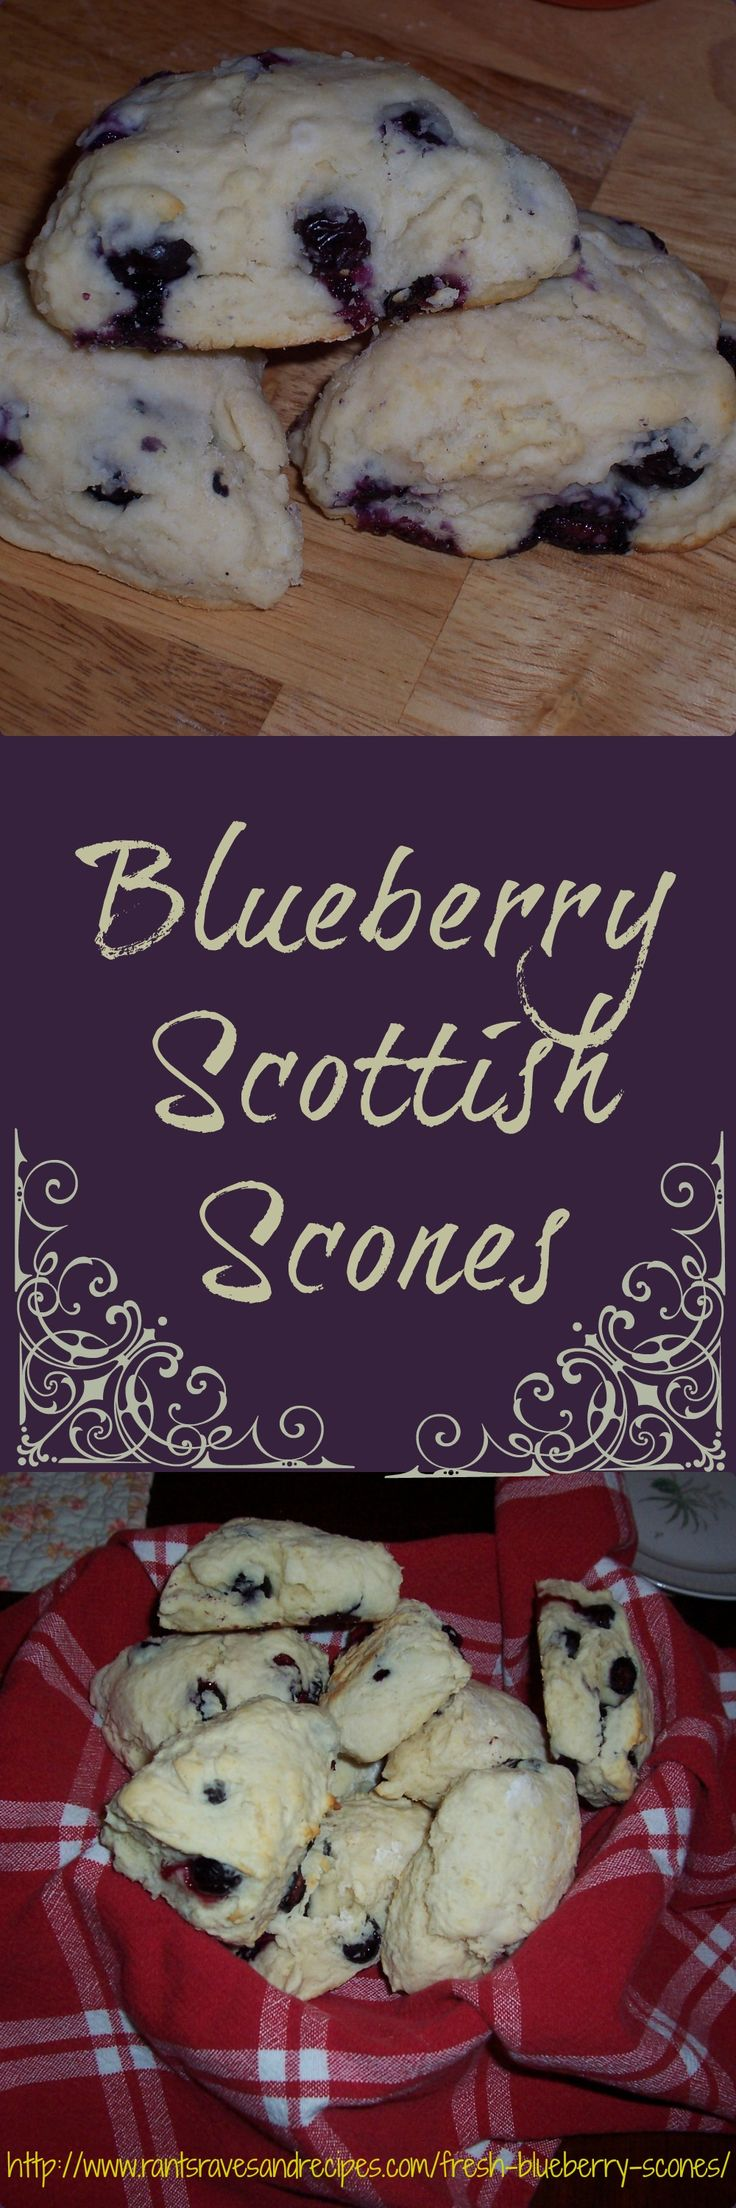 Fresh Blueberry Scottish Scones, a summer treat that can't be beat!